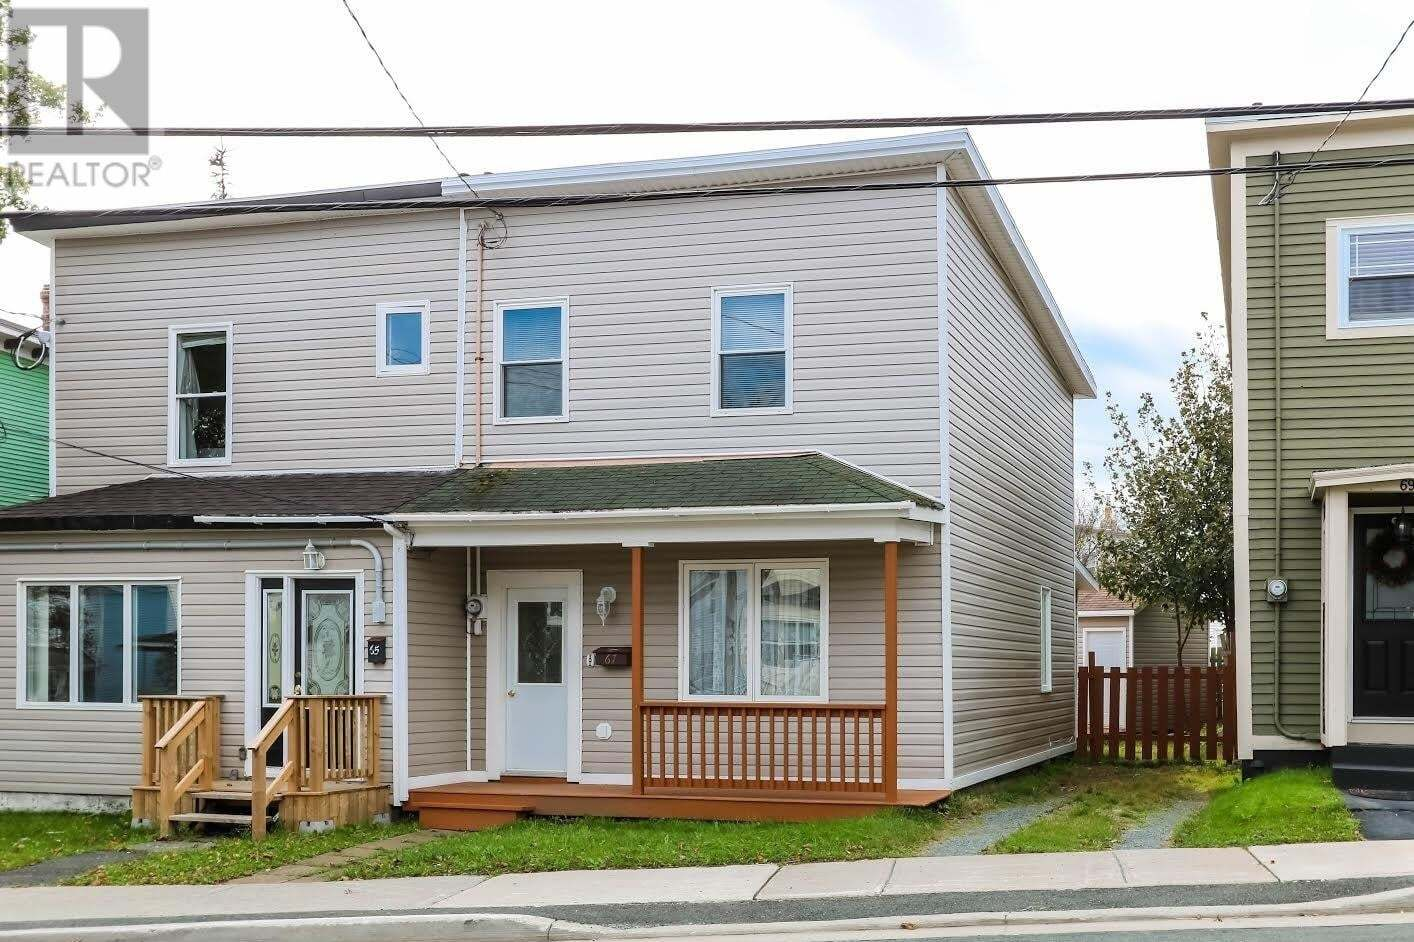 House for sale at 67 Golf Ave St. John's Newfoundland - MLS: 1222295